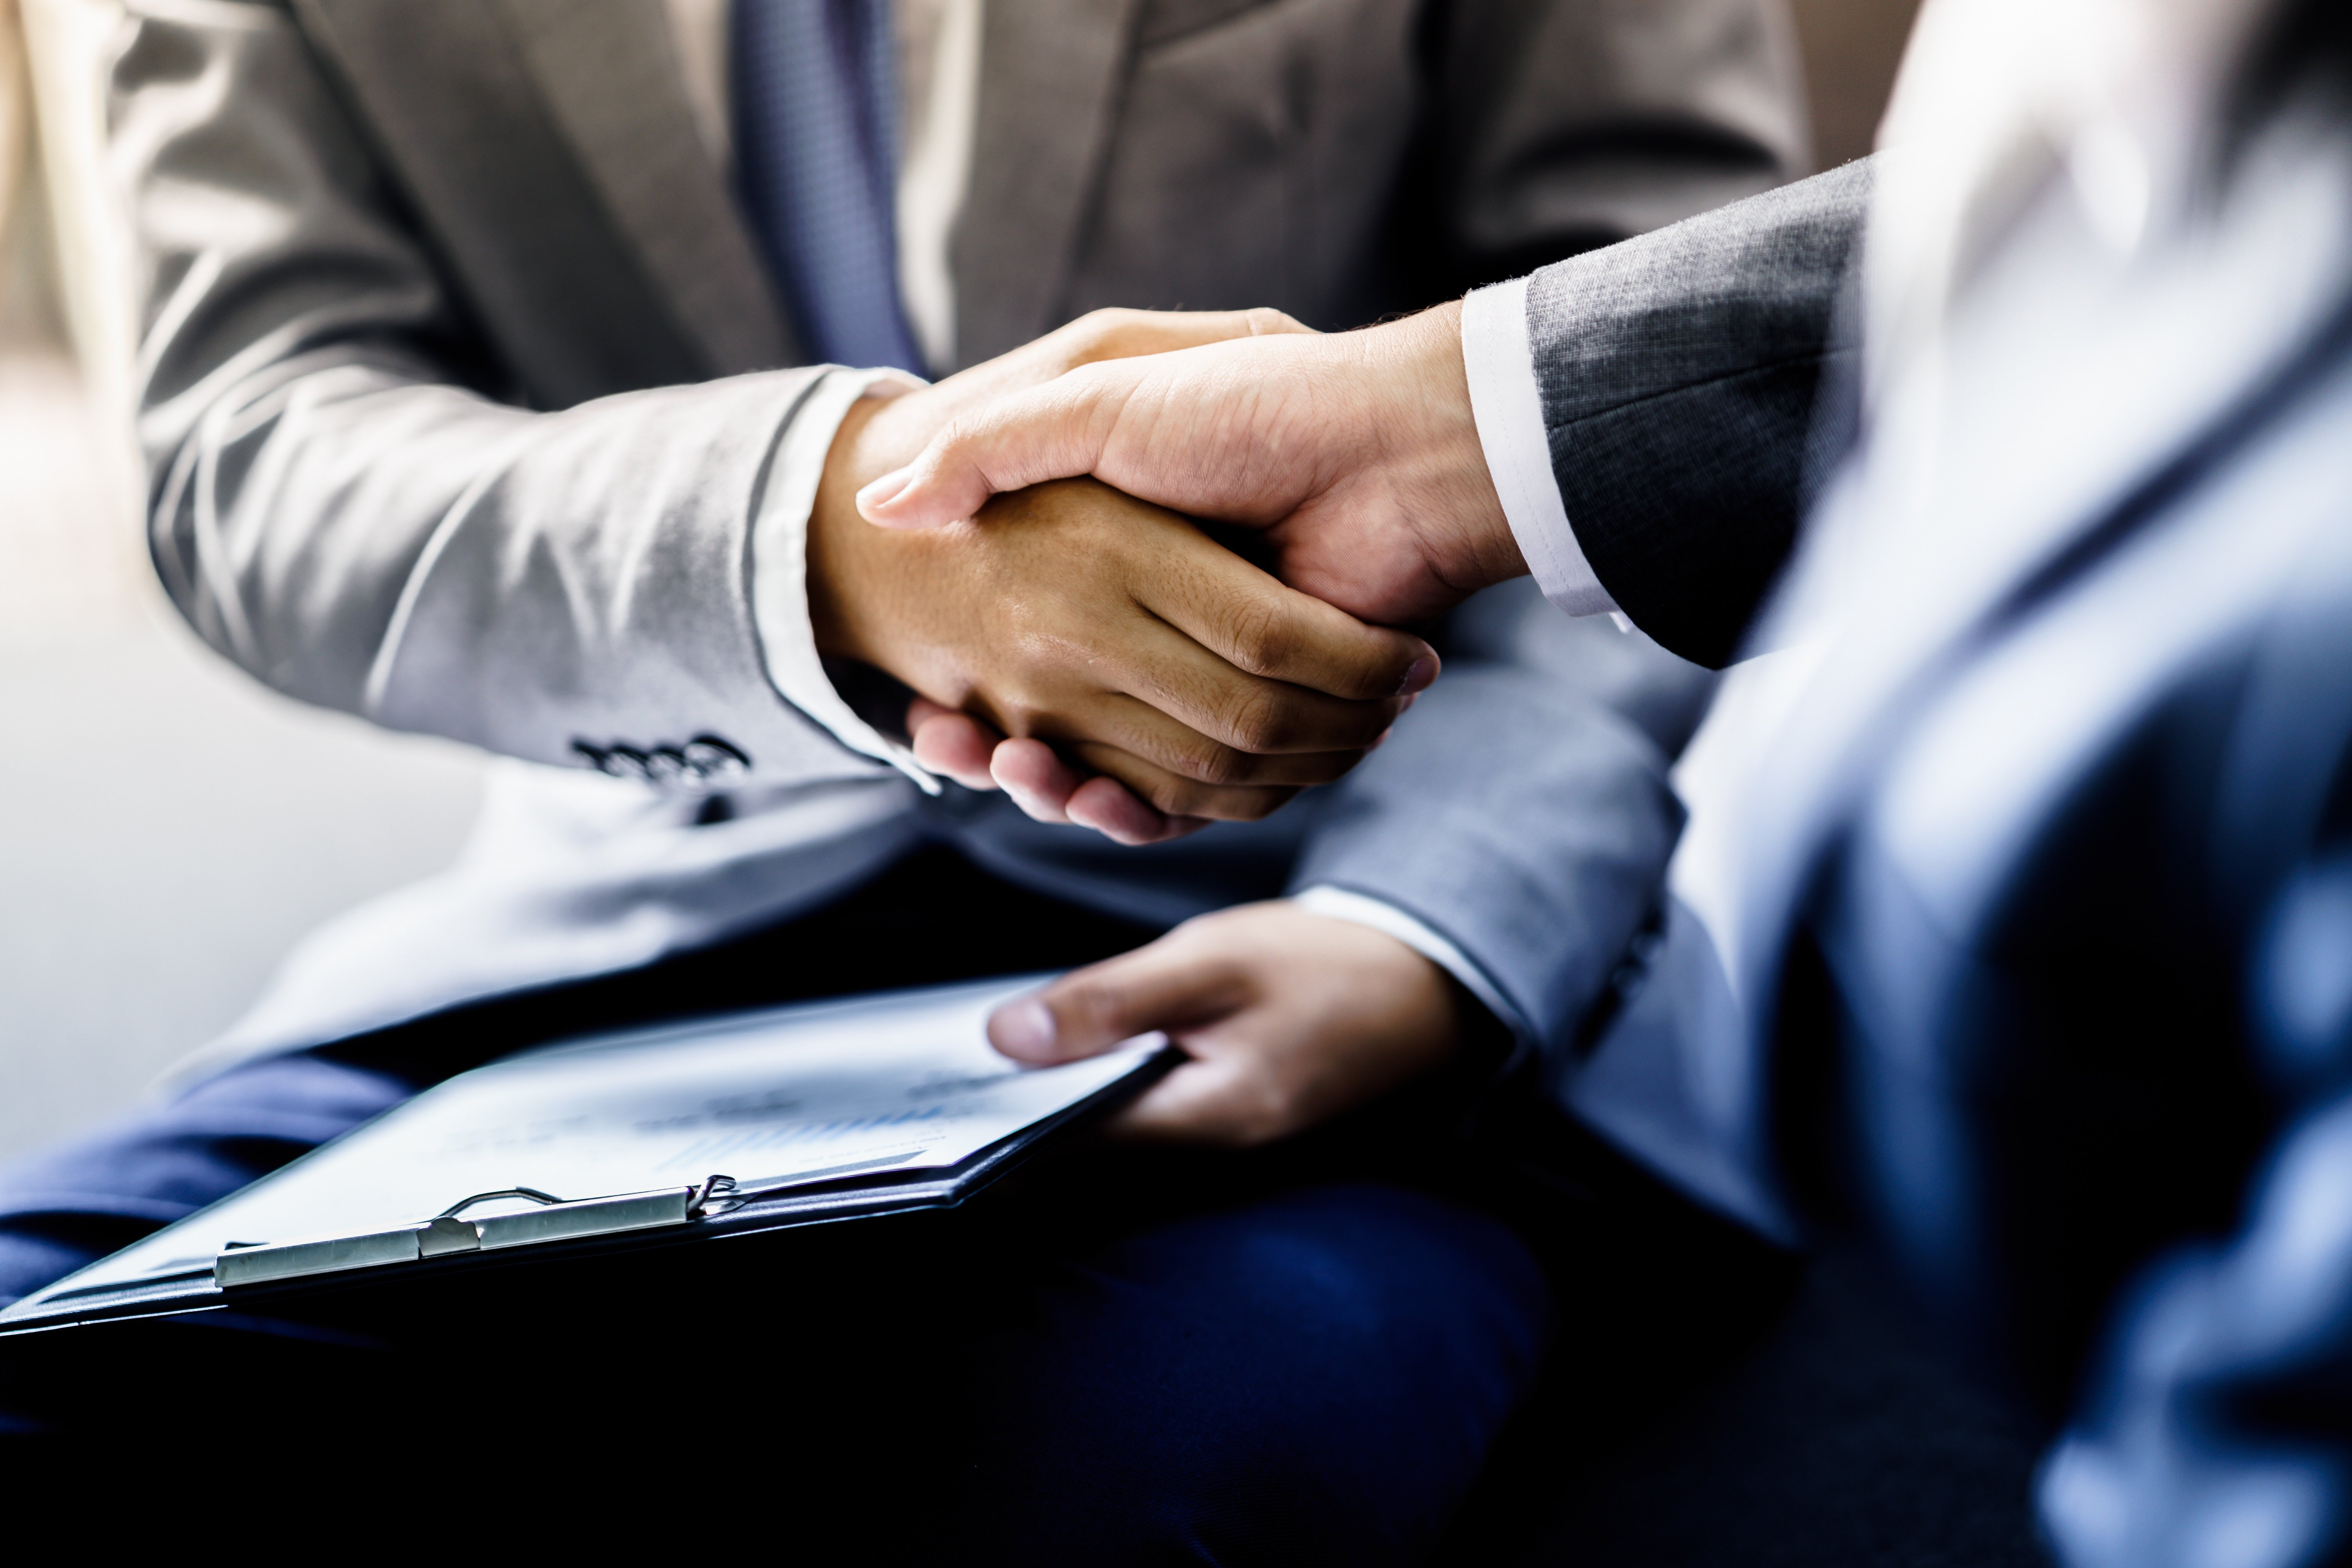 Learn the Seven Business Essentials Fundamental for Building Strong Relationships